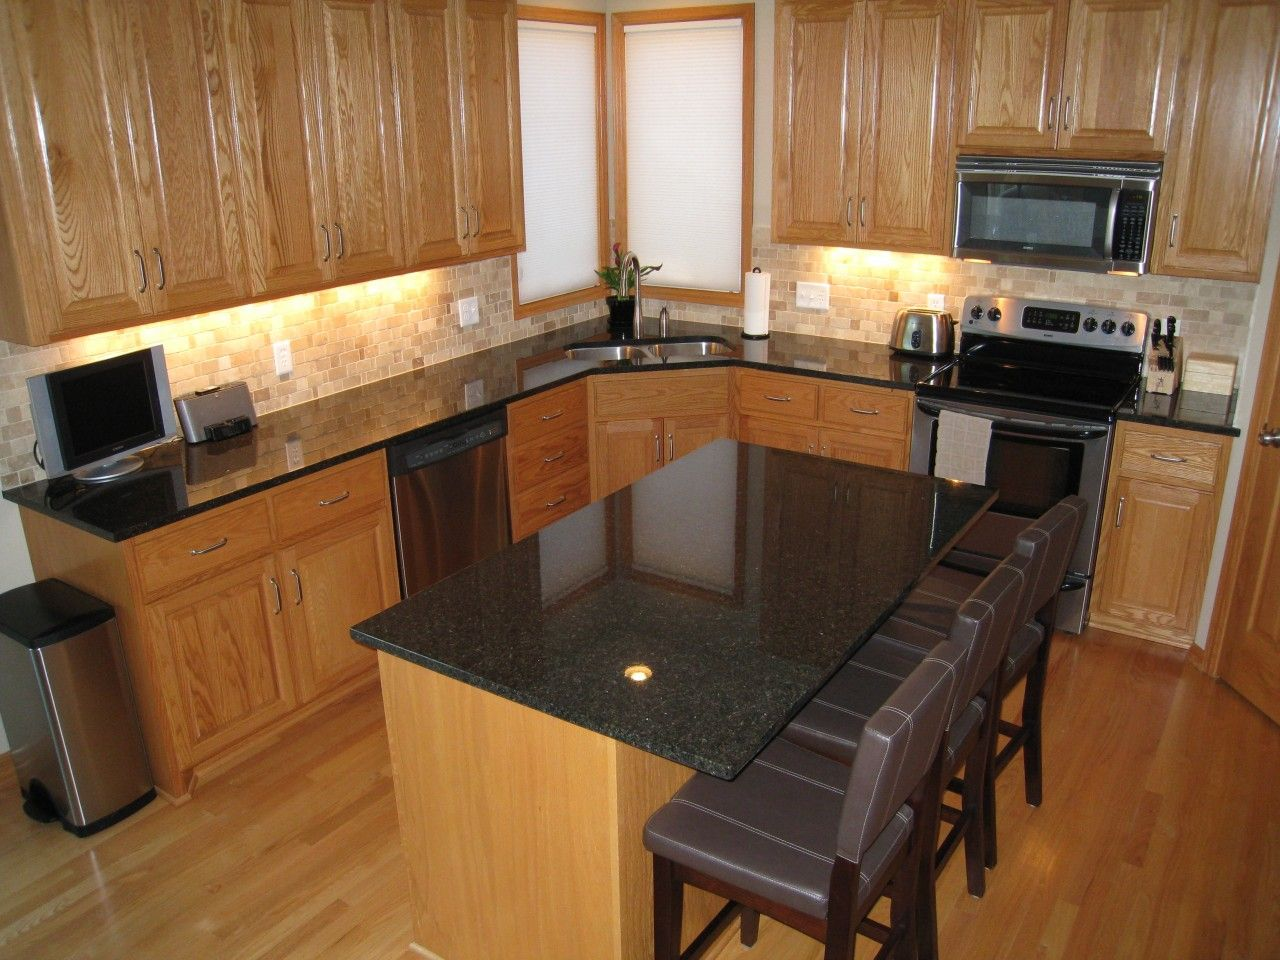 Dark grey countertops with oak cabinets google search for Dark oak kitchen cabinets